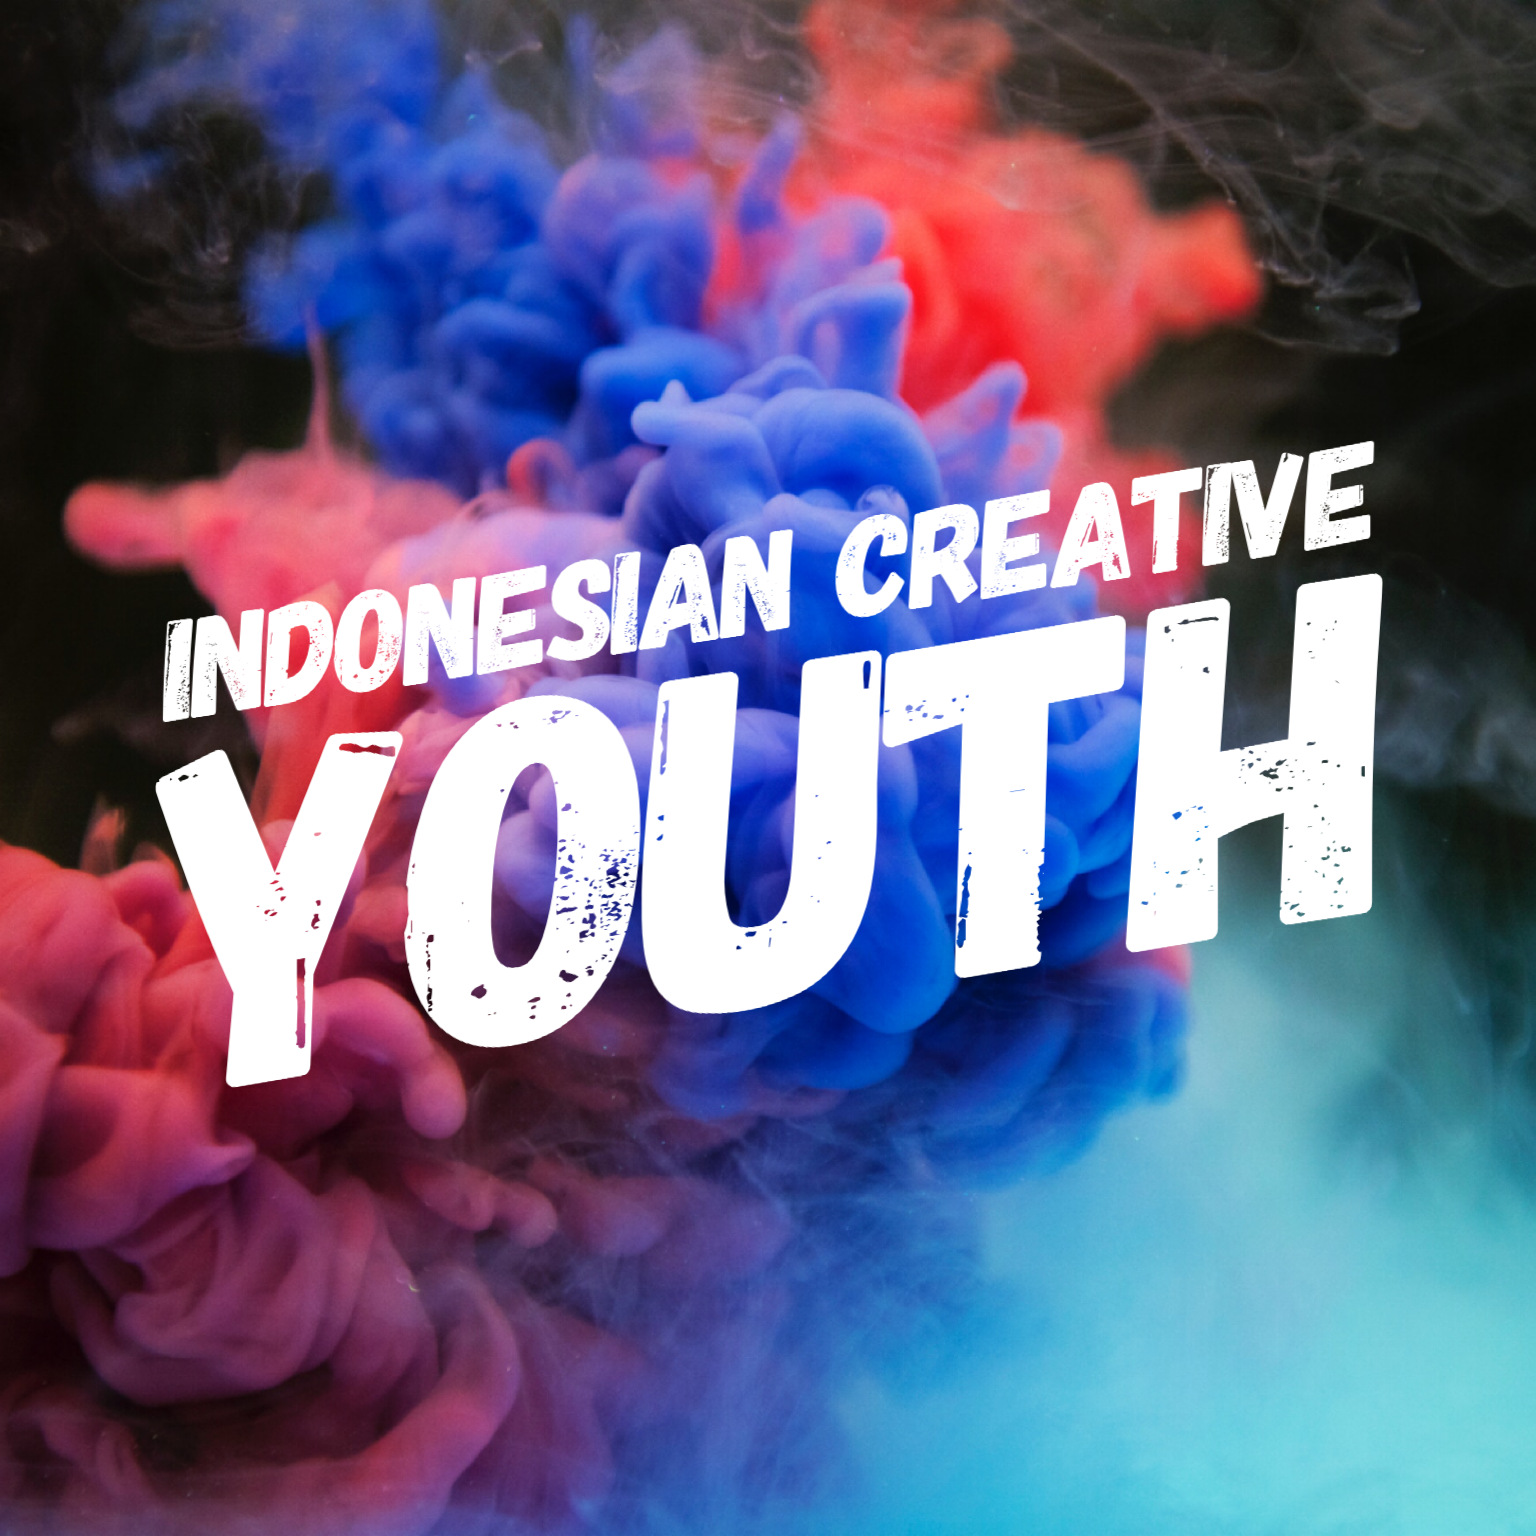 Indonesian Creative Youth